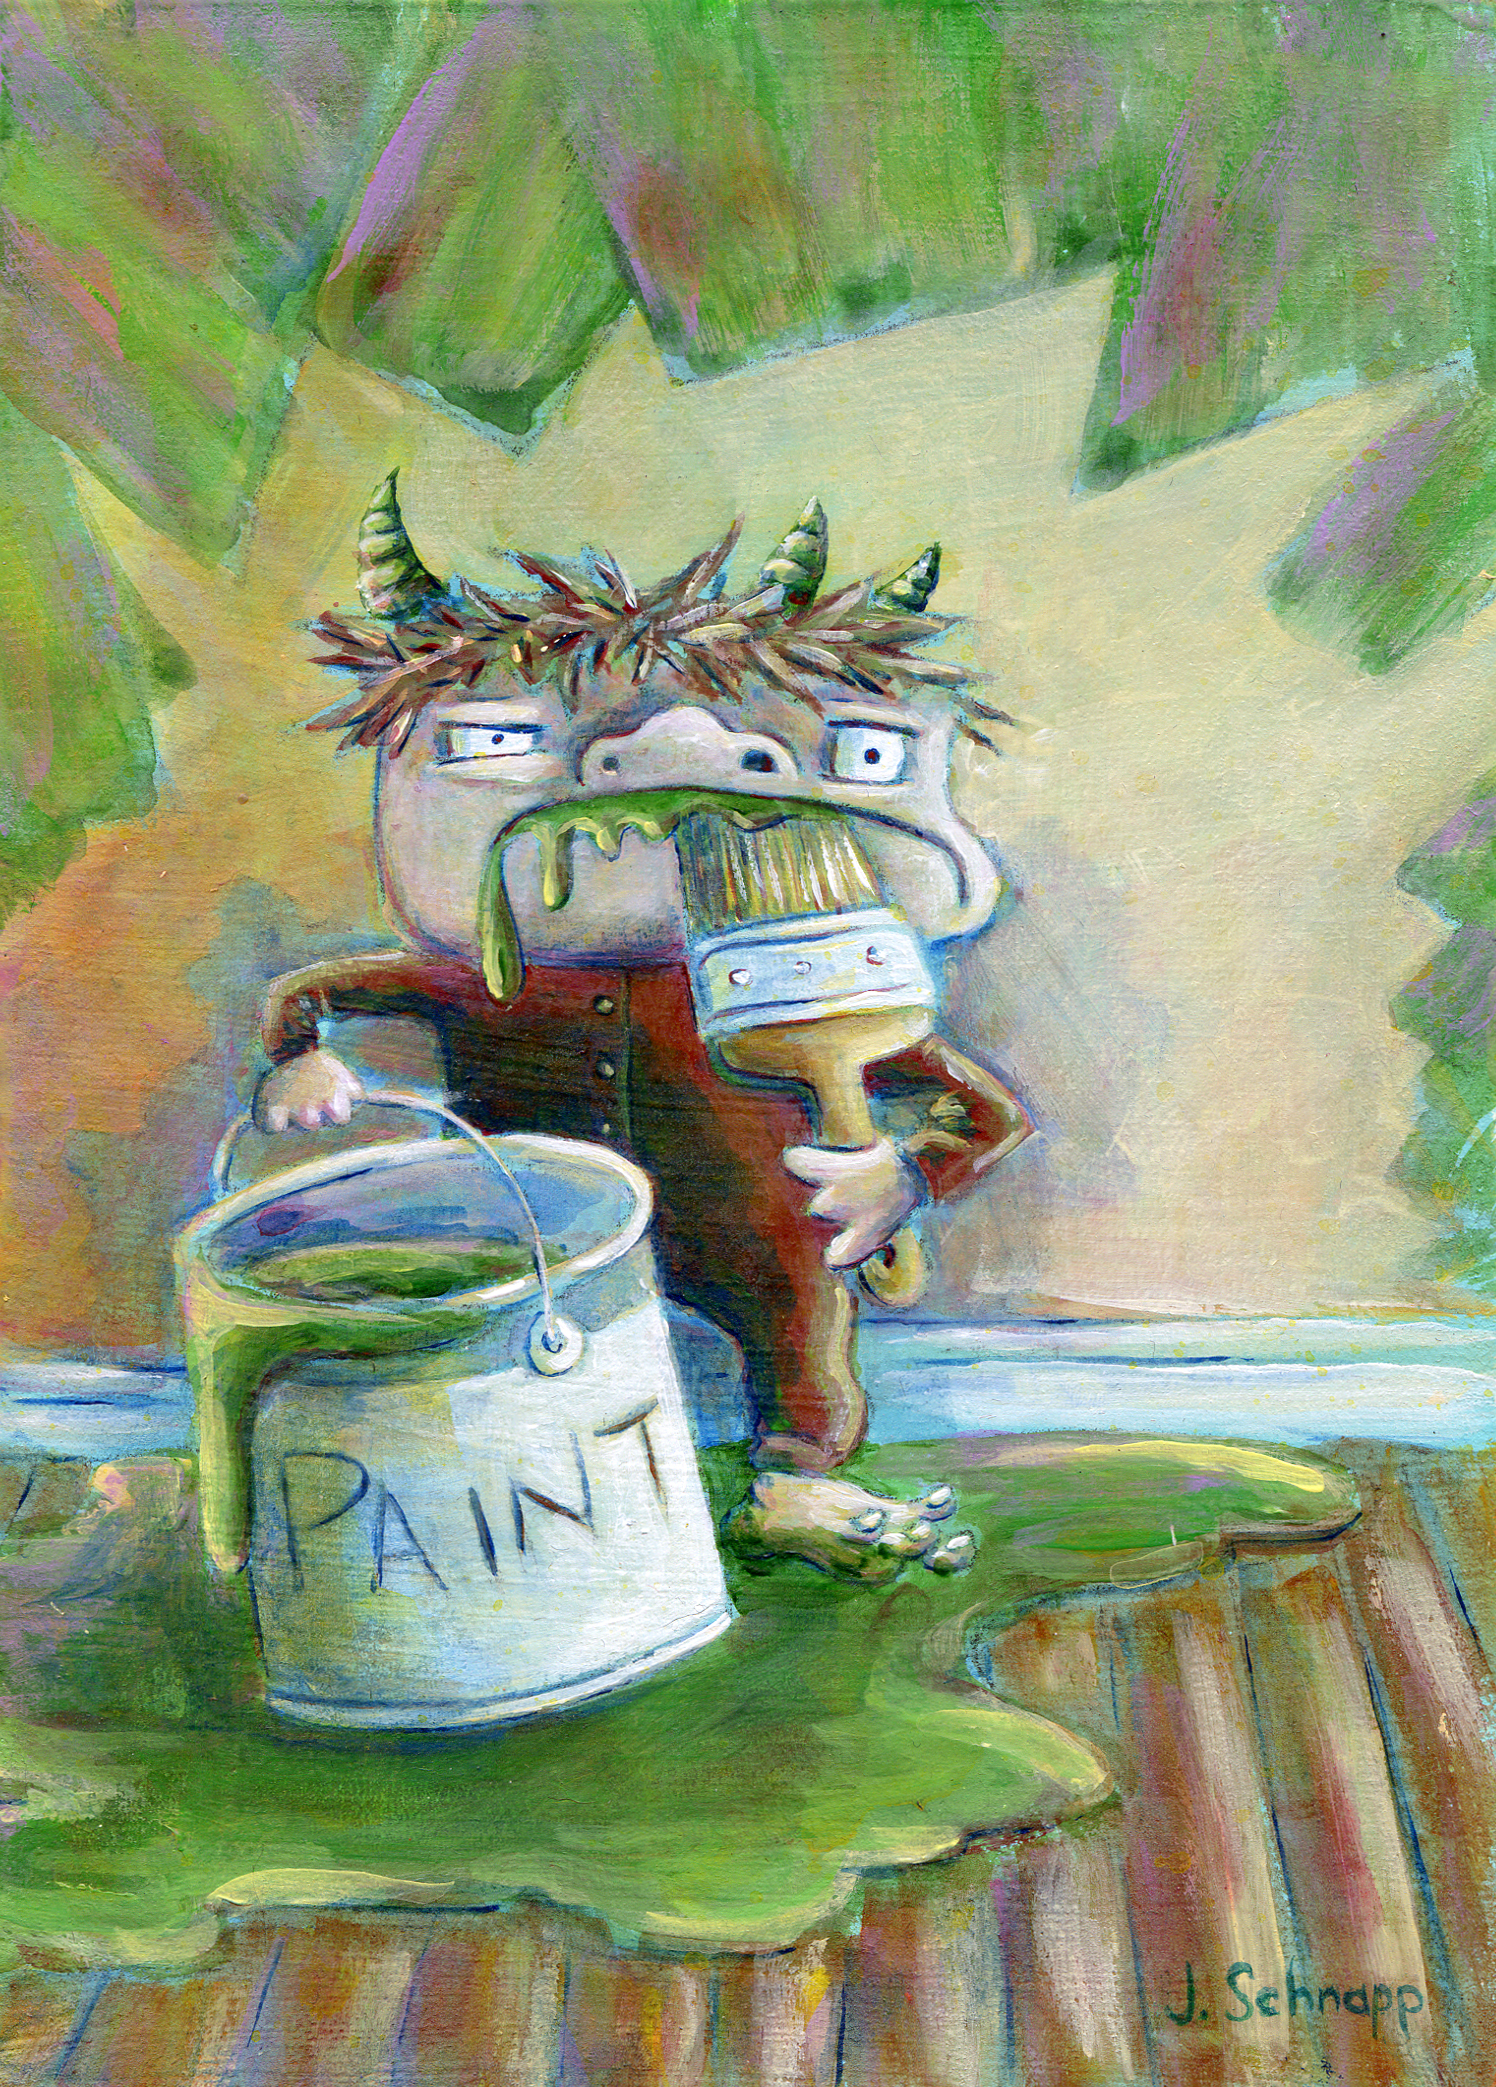 Paint Monster #2 by Jonathan Schnapp